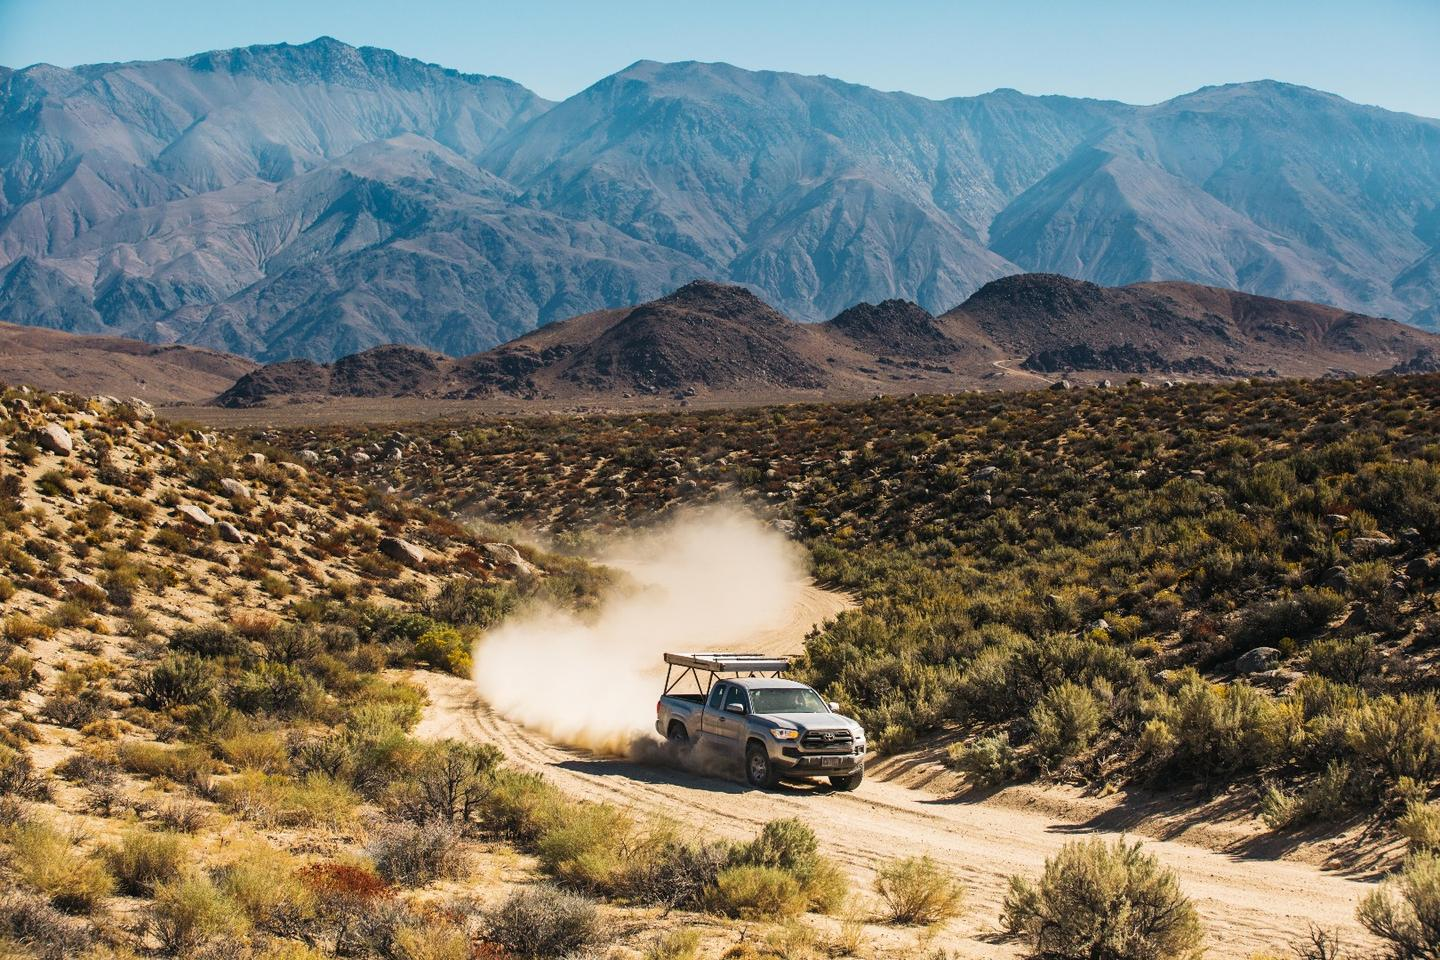 With its low weight and tough, race-inspired build, the Go Fast Camper is designed for fast, bumpy rides to and out of camp